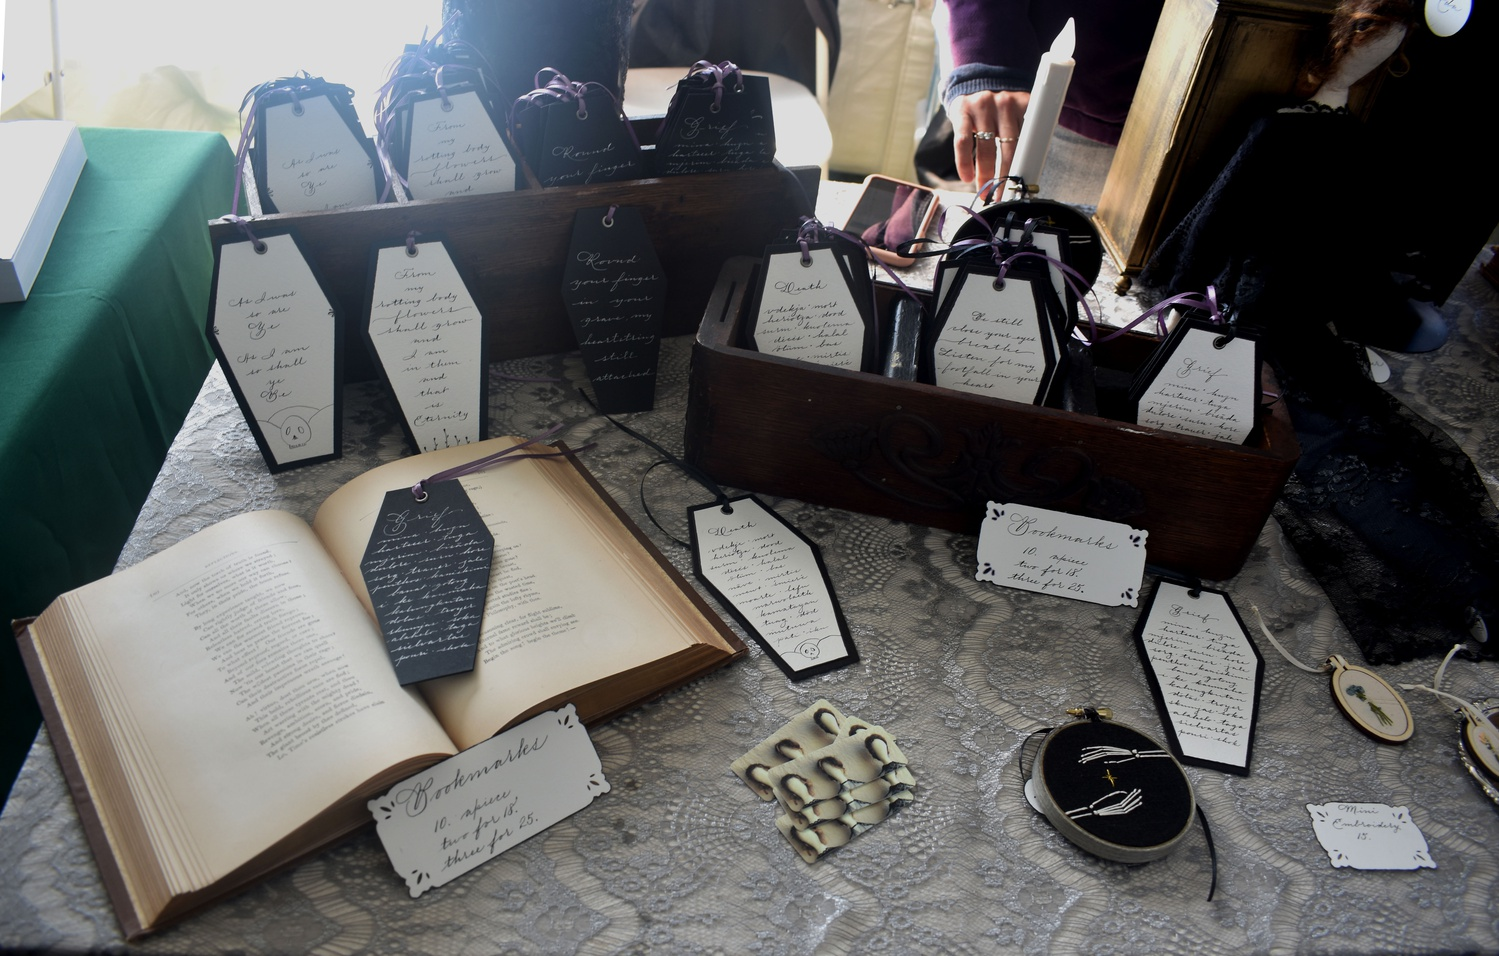 Bookmarks and other death-positive items are sold at the Death Salon.